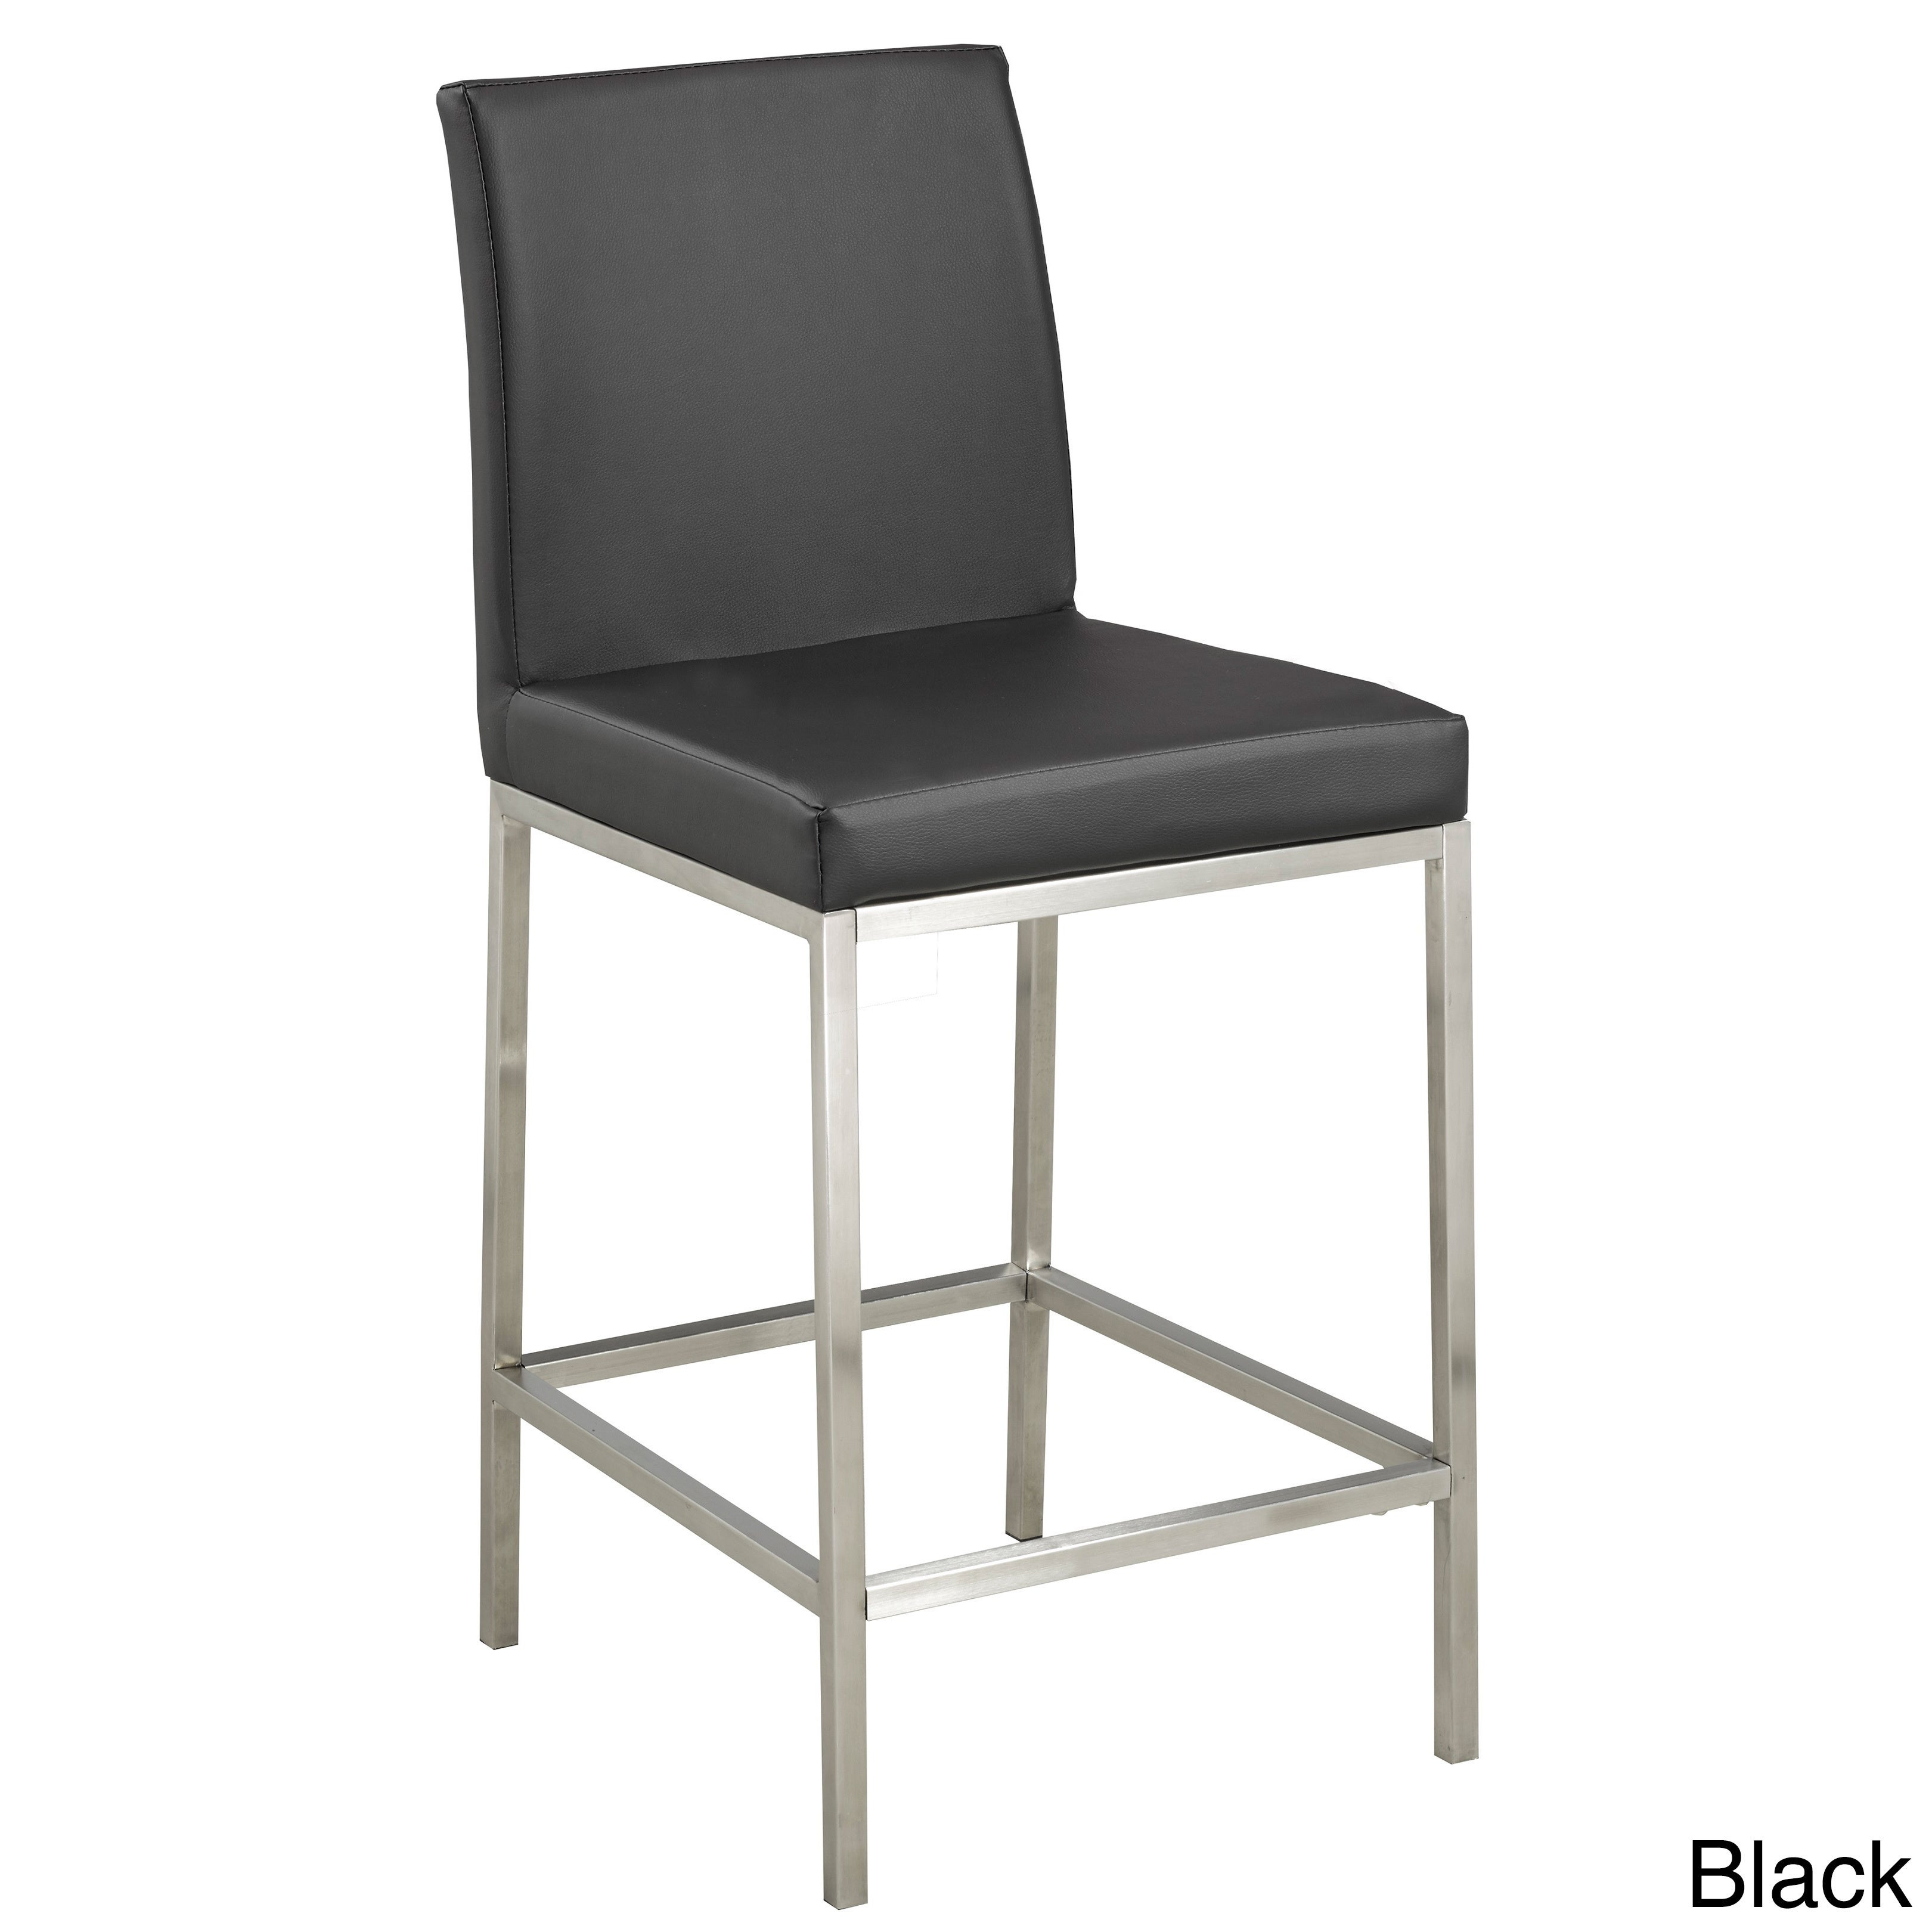 Swell Contemporary Faux Leather Upholstered Armless Counter Stool Cjindustries Chair Design For Home Cjindustriesco